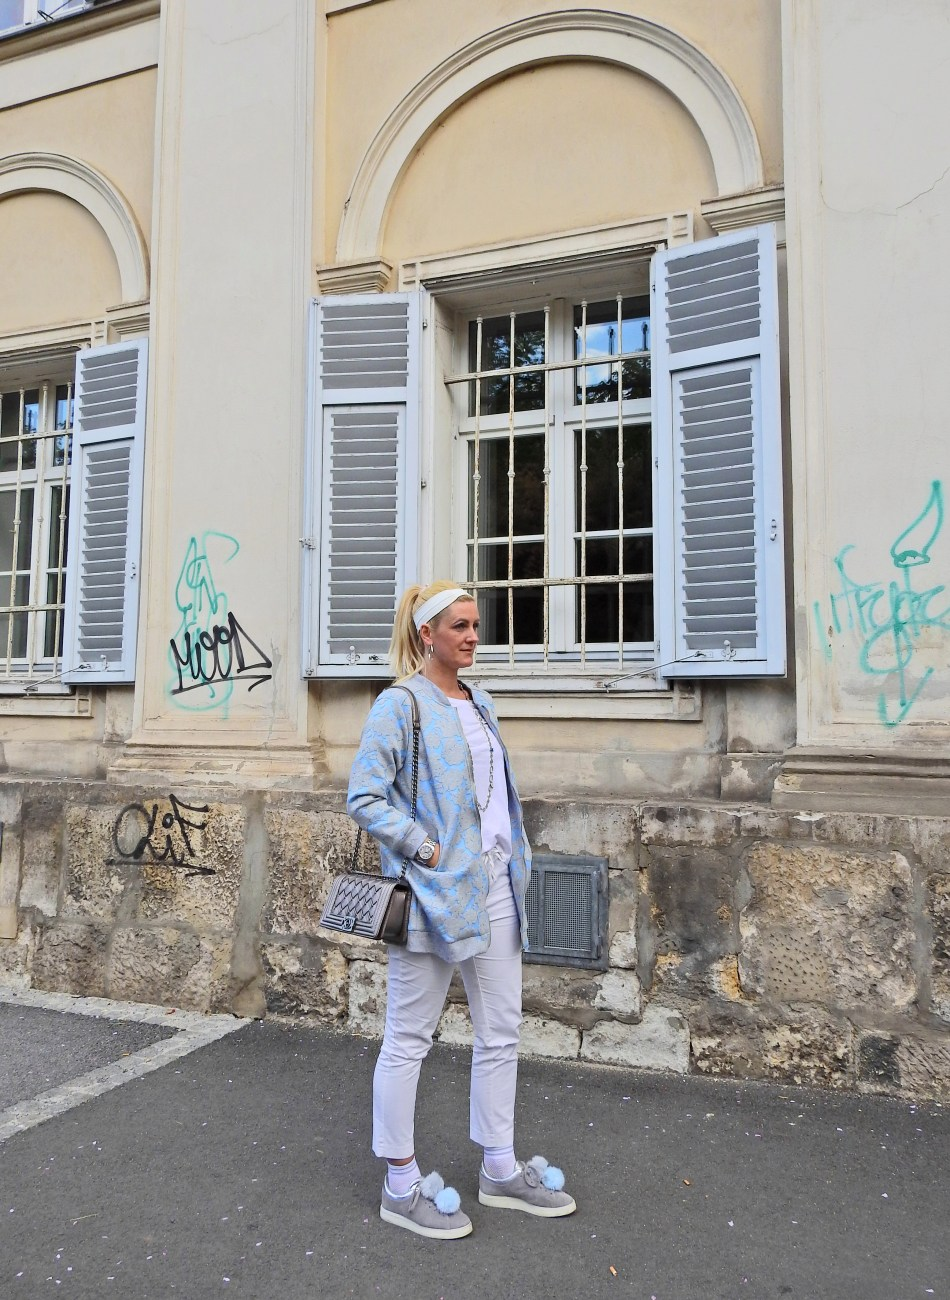 Blue-Coat-Rosgal-White-Pants-Tshirt-Pompom-Sneakers-Chanel-Bag-carrieslifestyle-austrian-blogger-fashion-socks